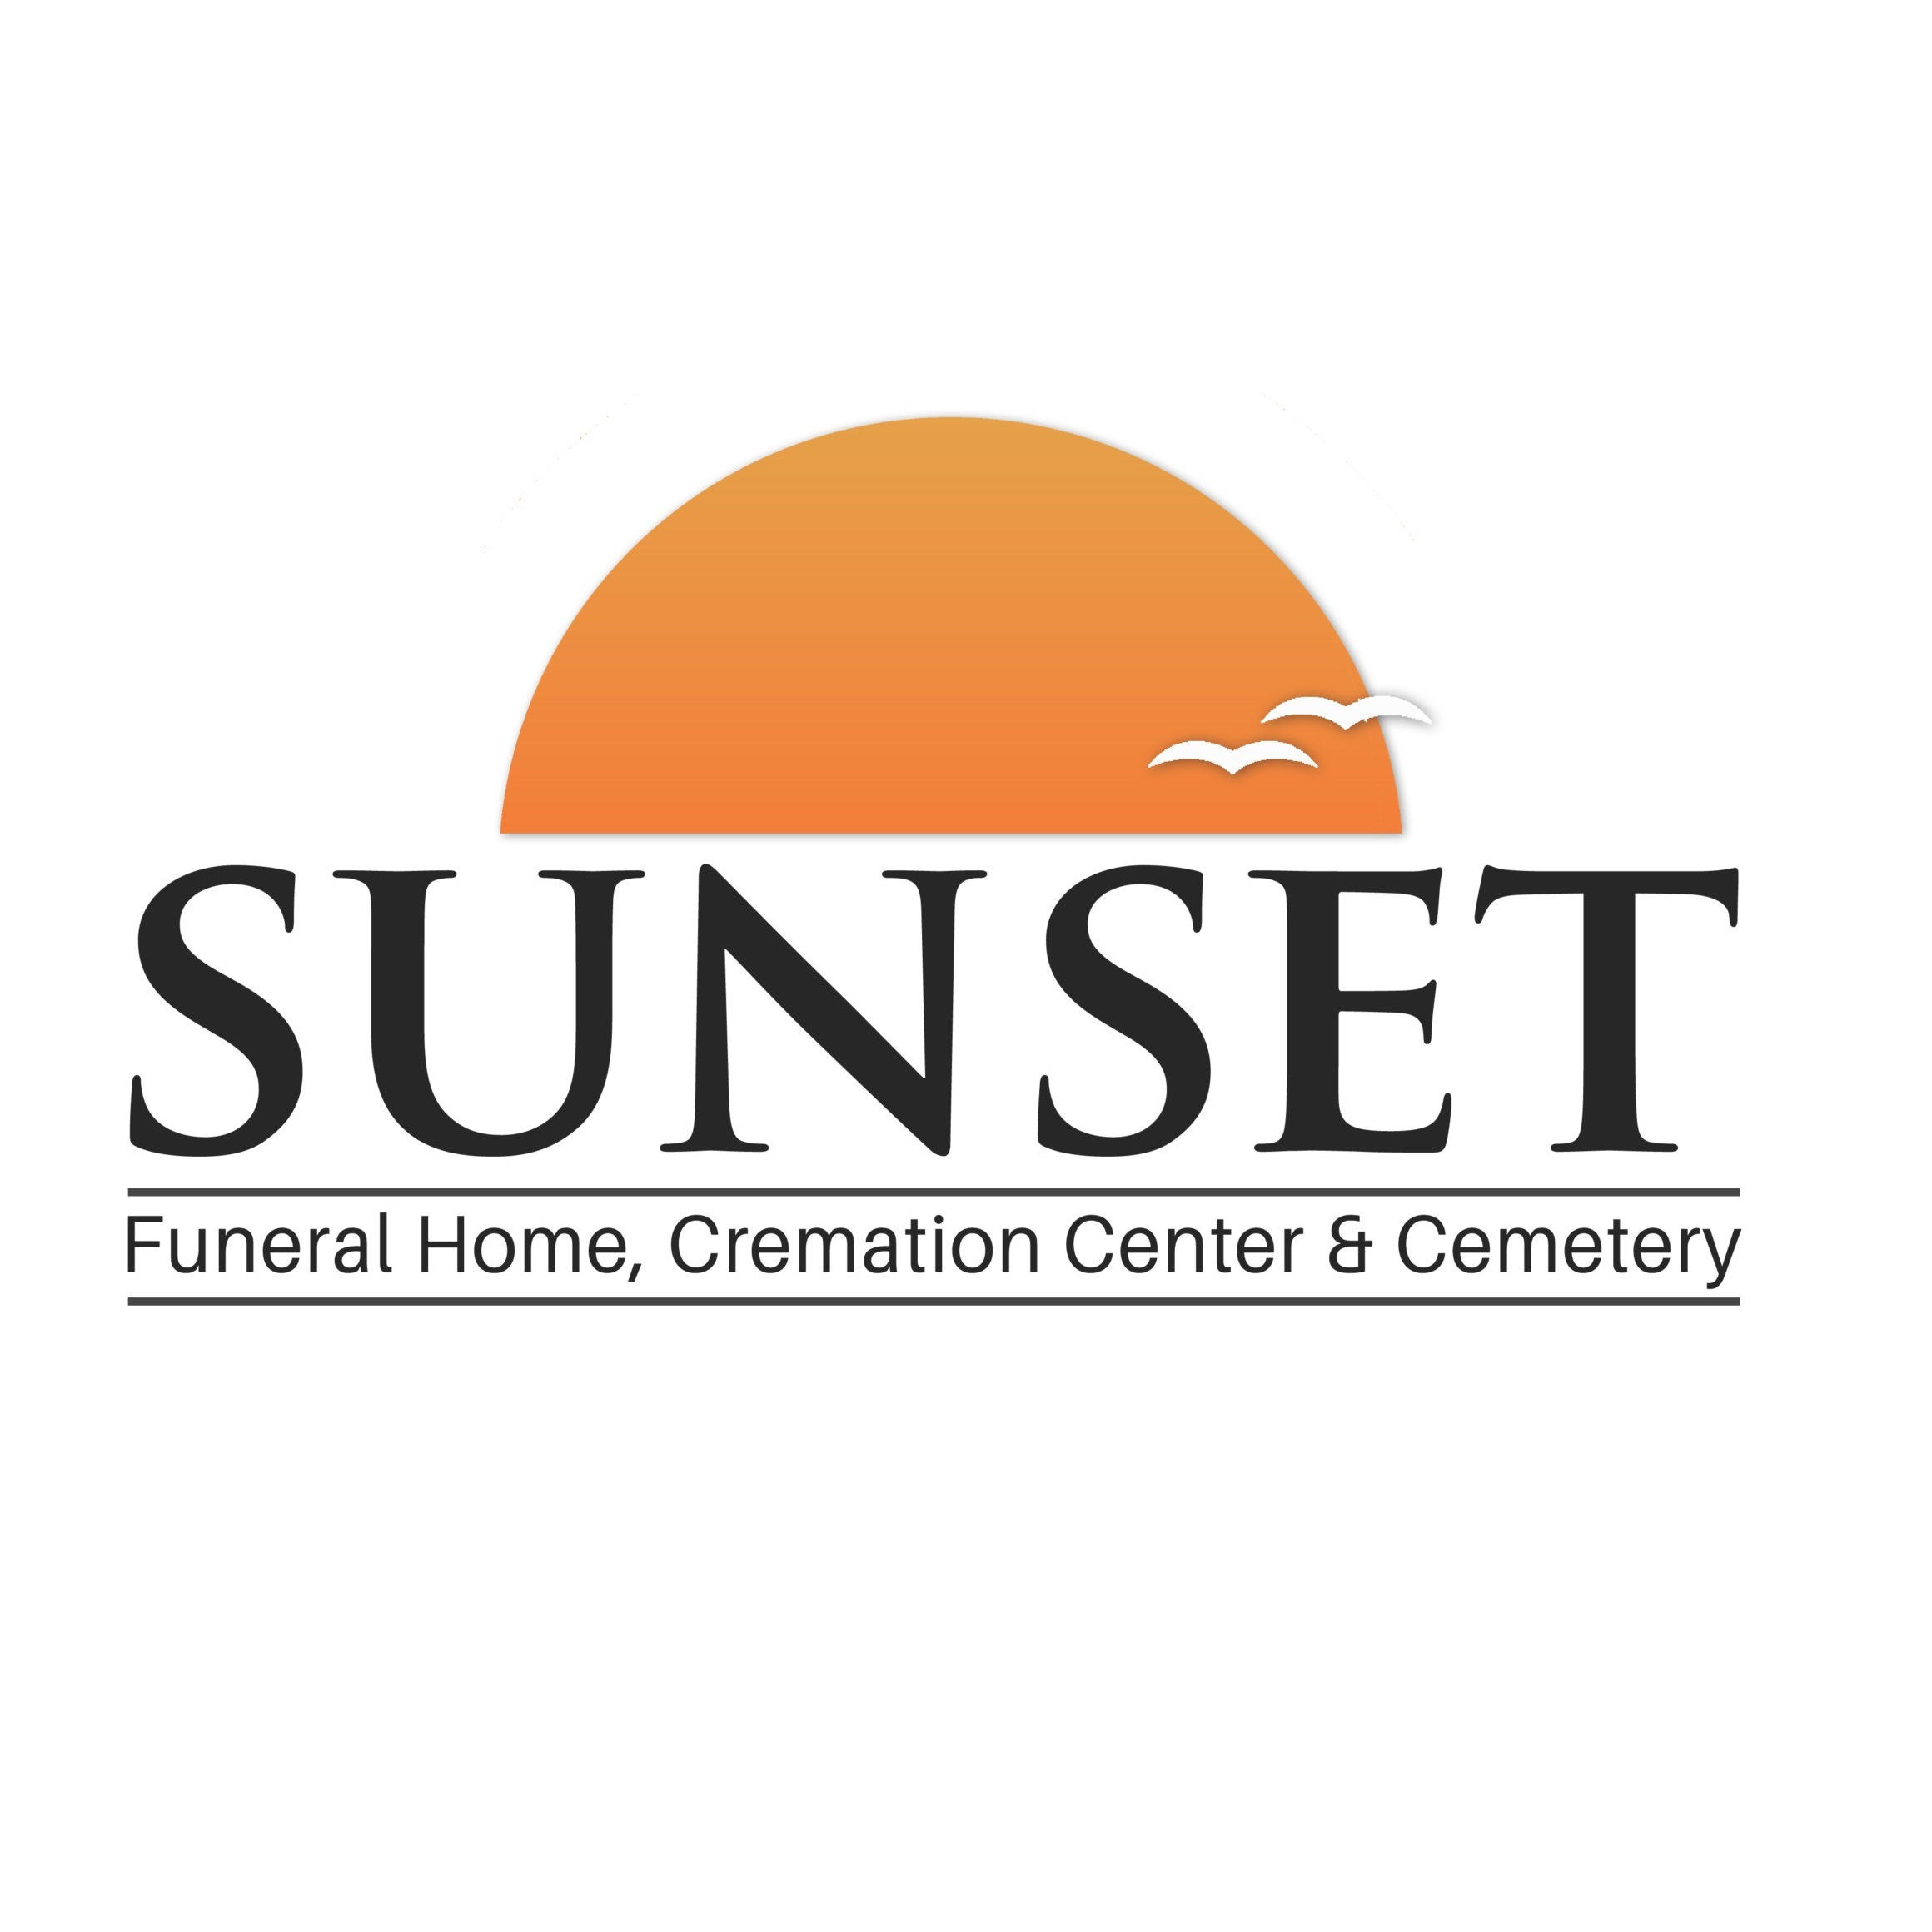 Sunset Funeral Home, Cremation Center & Cemetery image 7